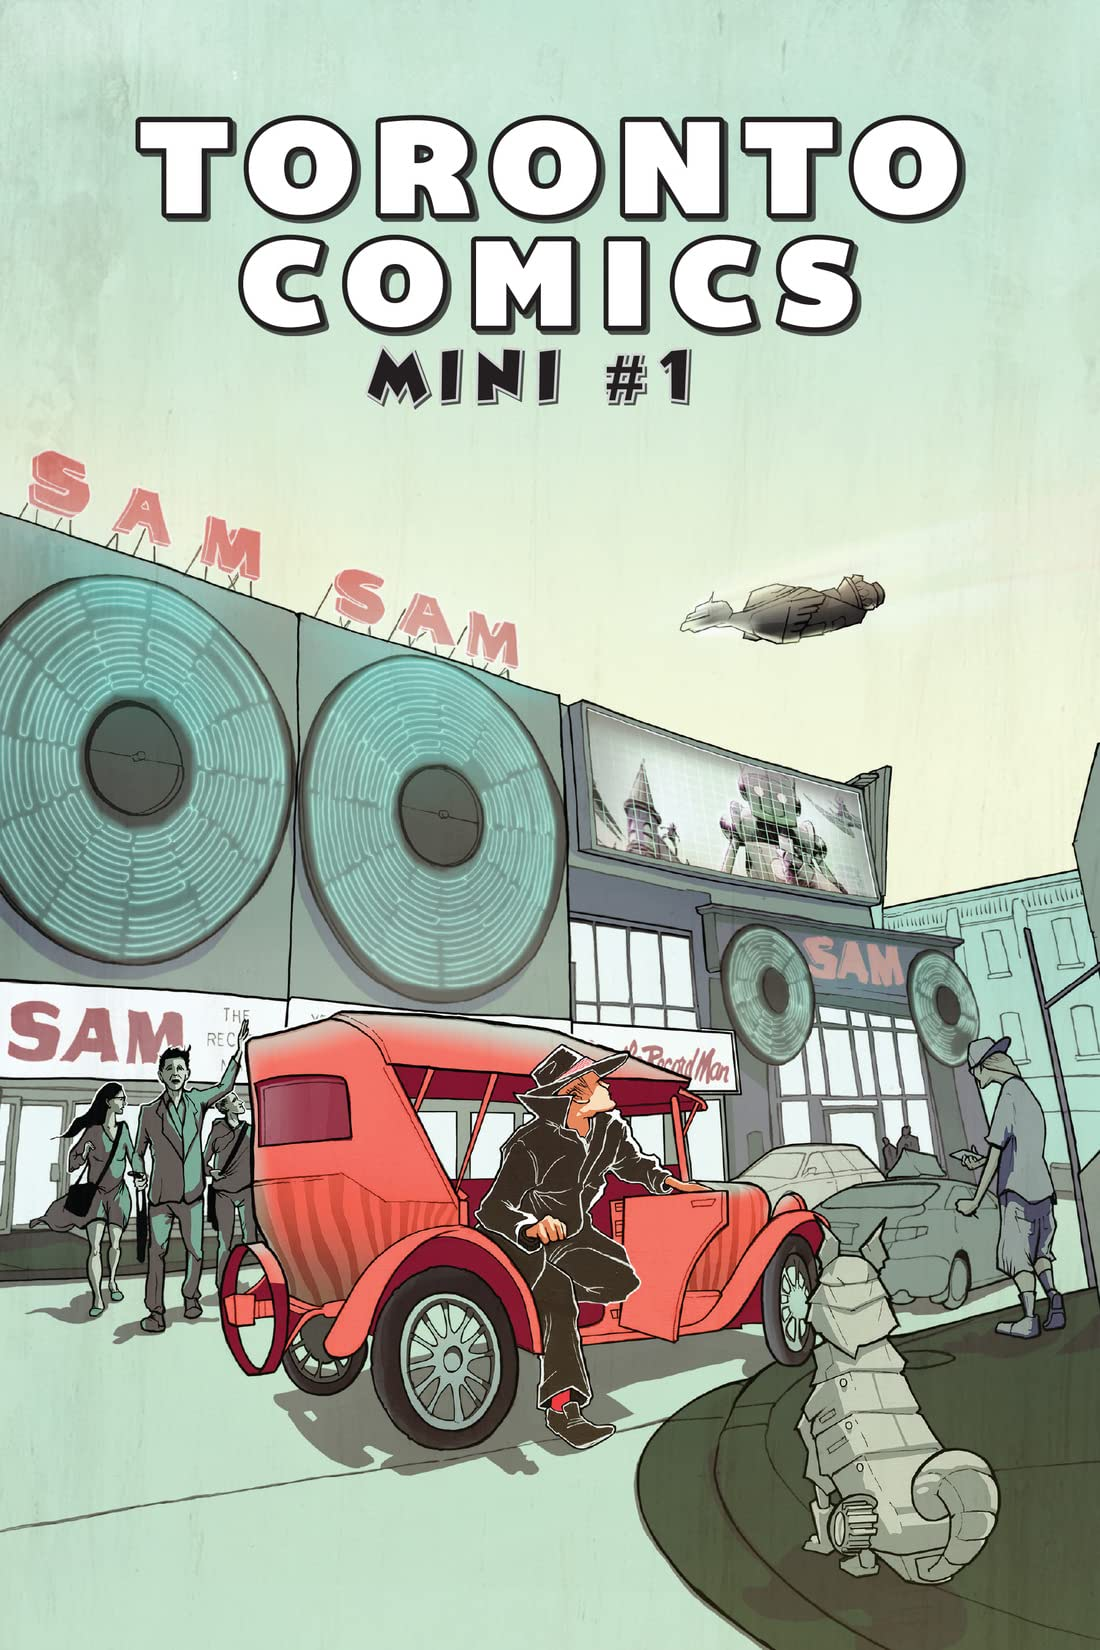 Toronto Comics Mini Vol. 1